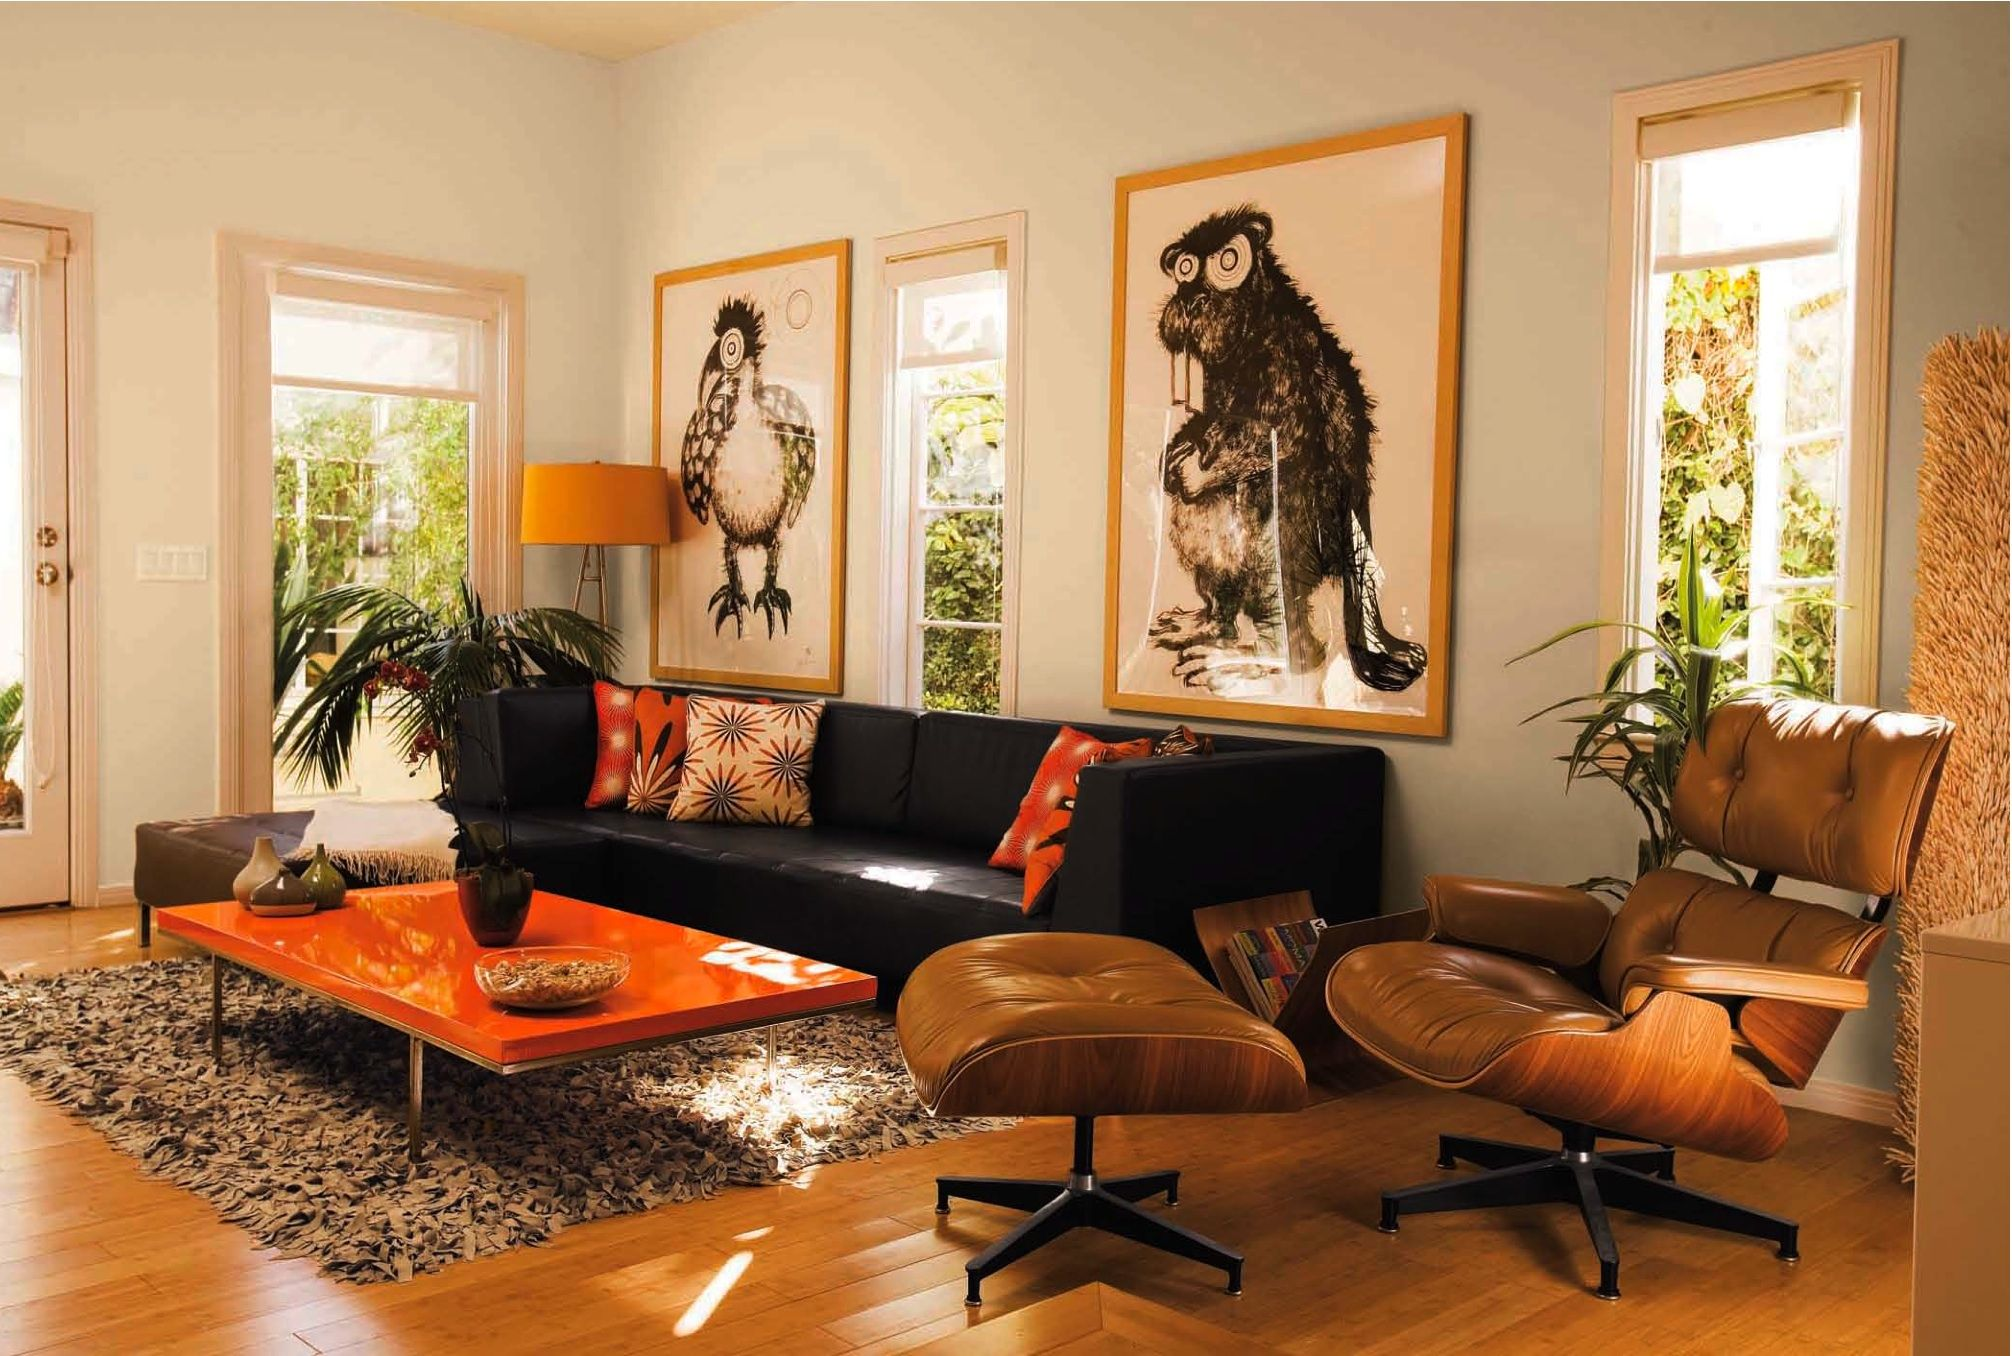 dark brown couch, orange accents, side chair and ottaman, lamp and